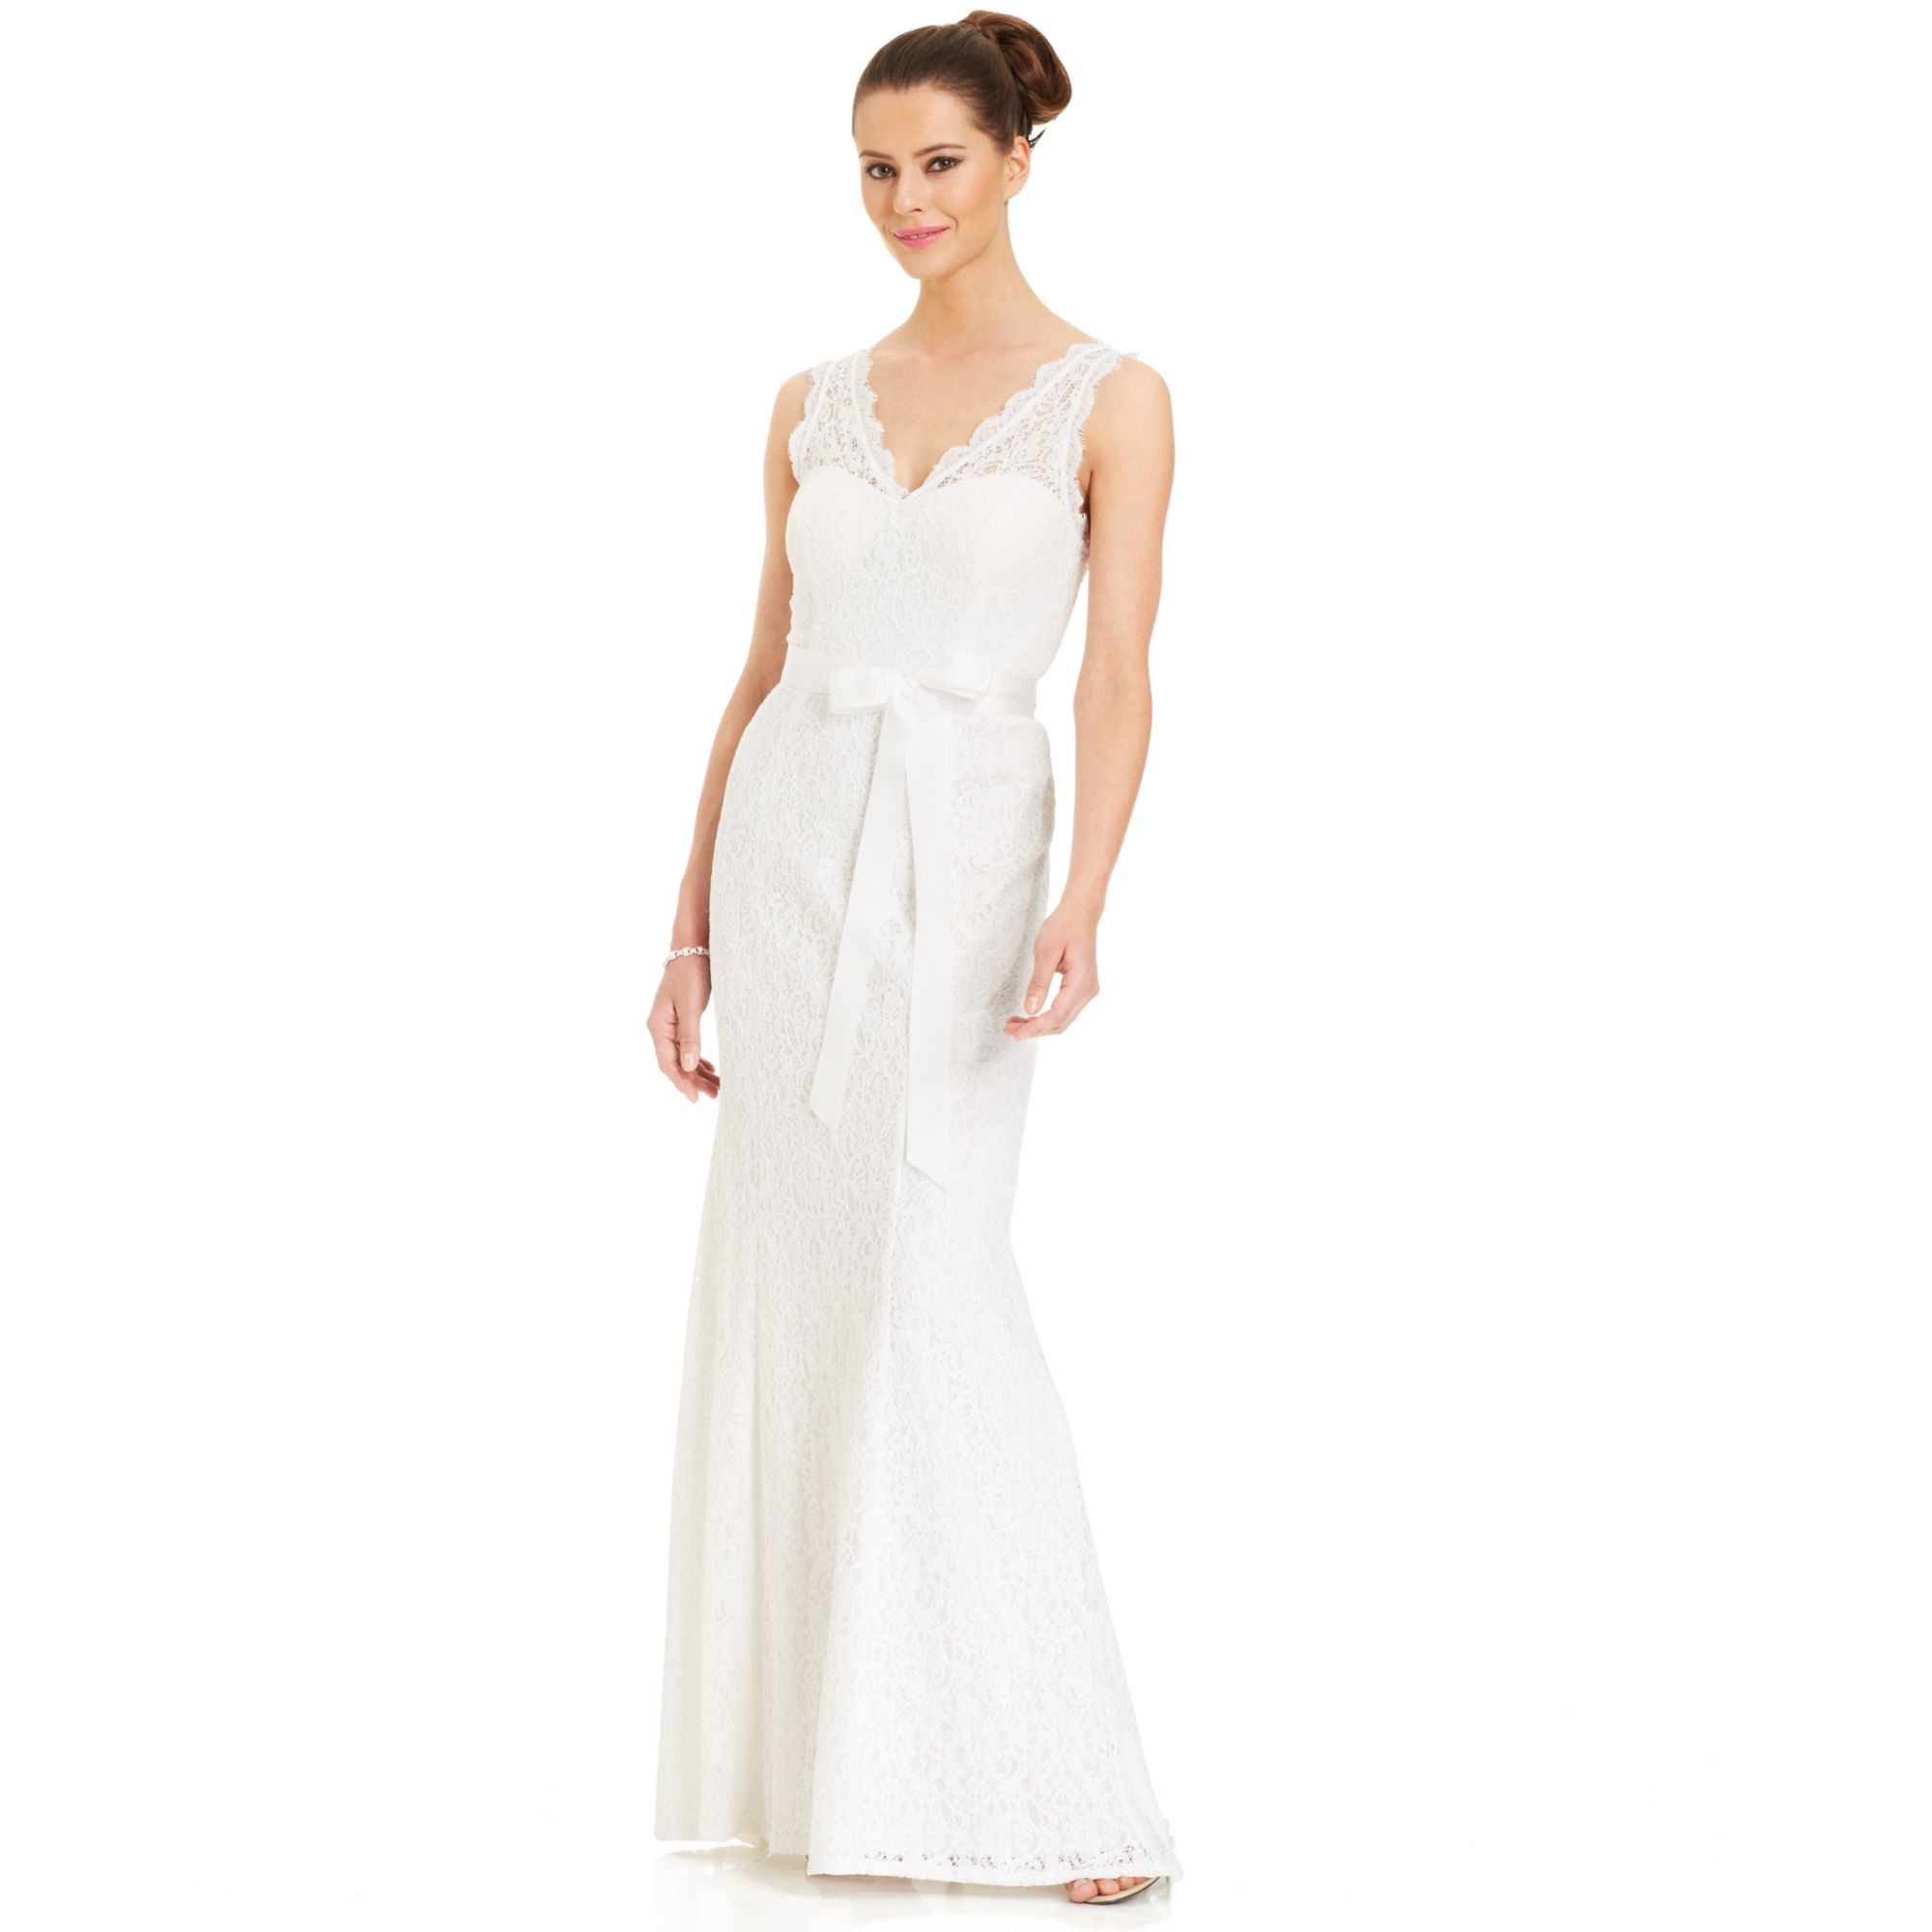 Lyst - Adrianna Papell Sleeveless Illusion Lace Gown in White